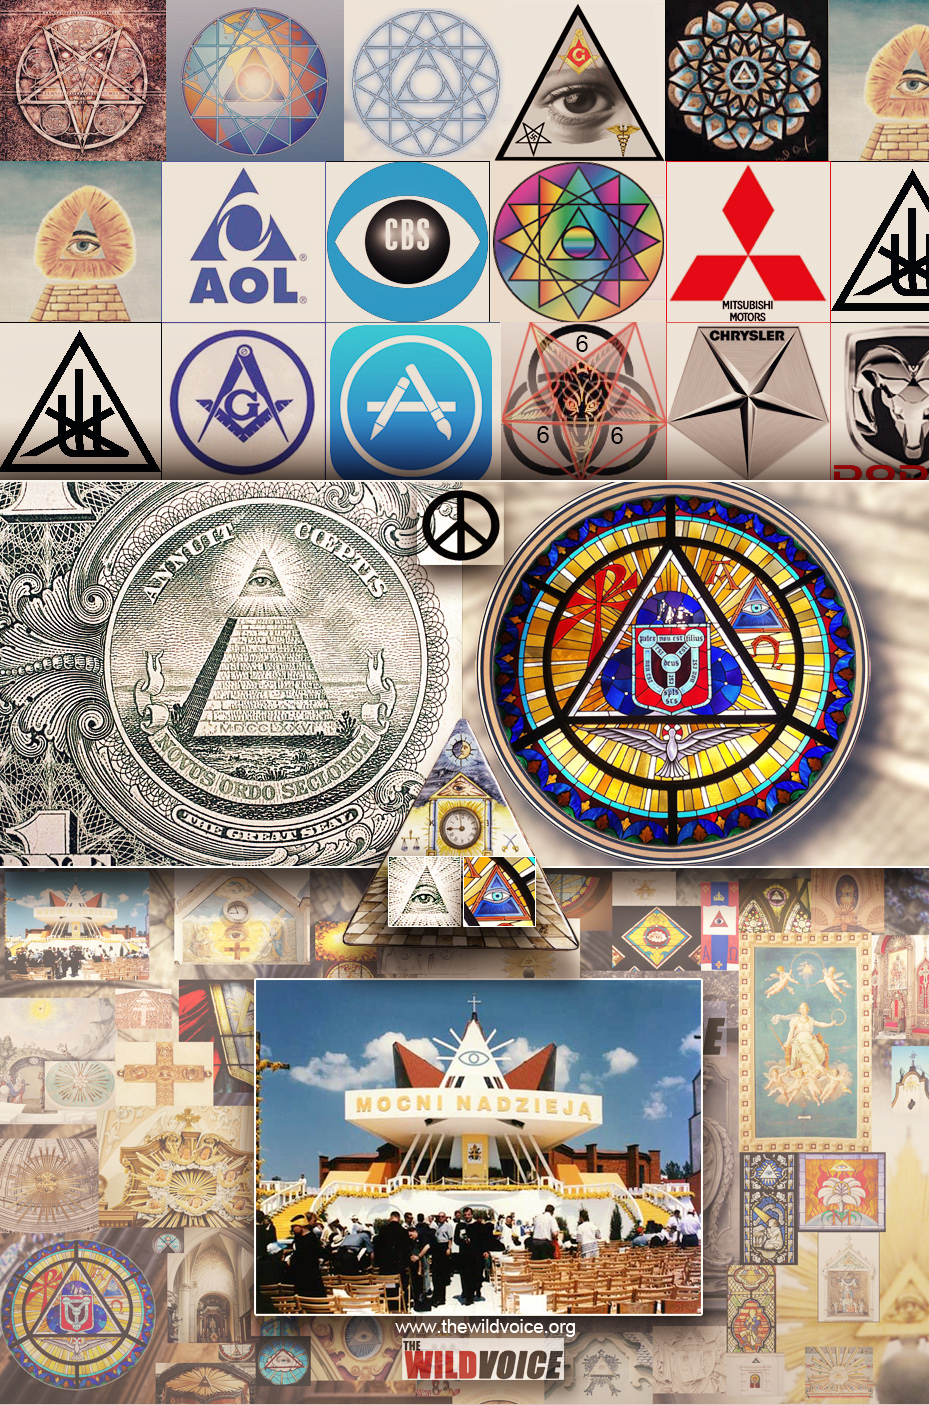 new world order new order of the Mass